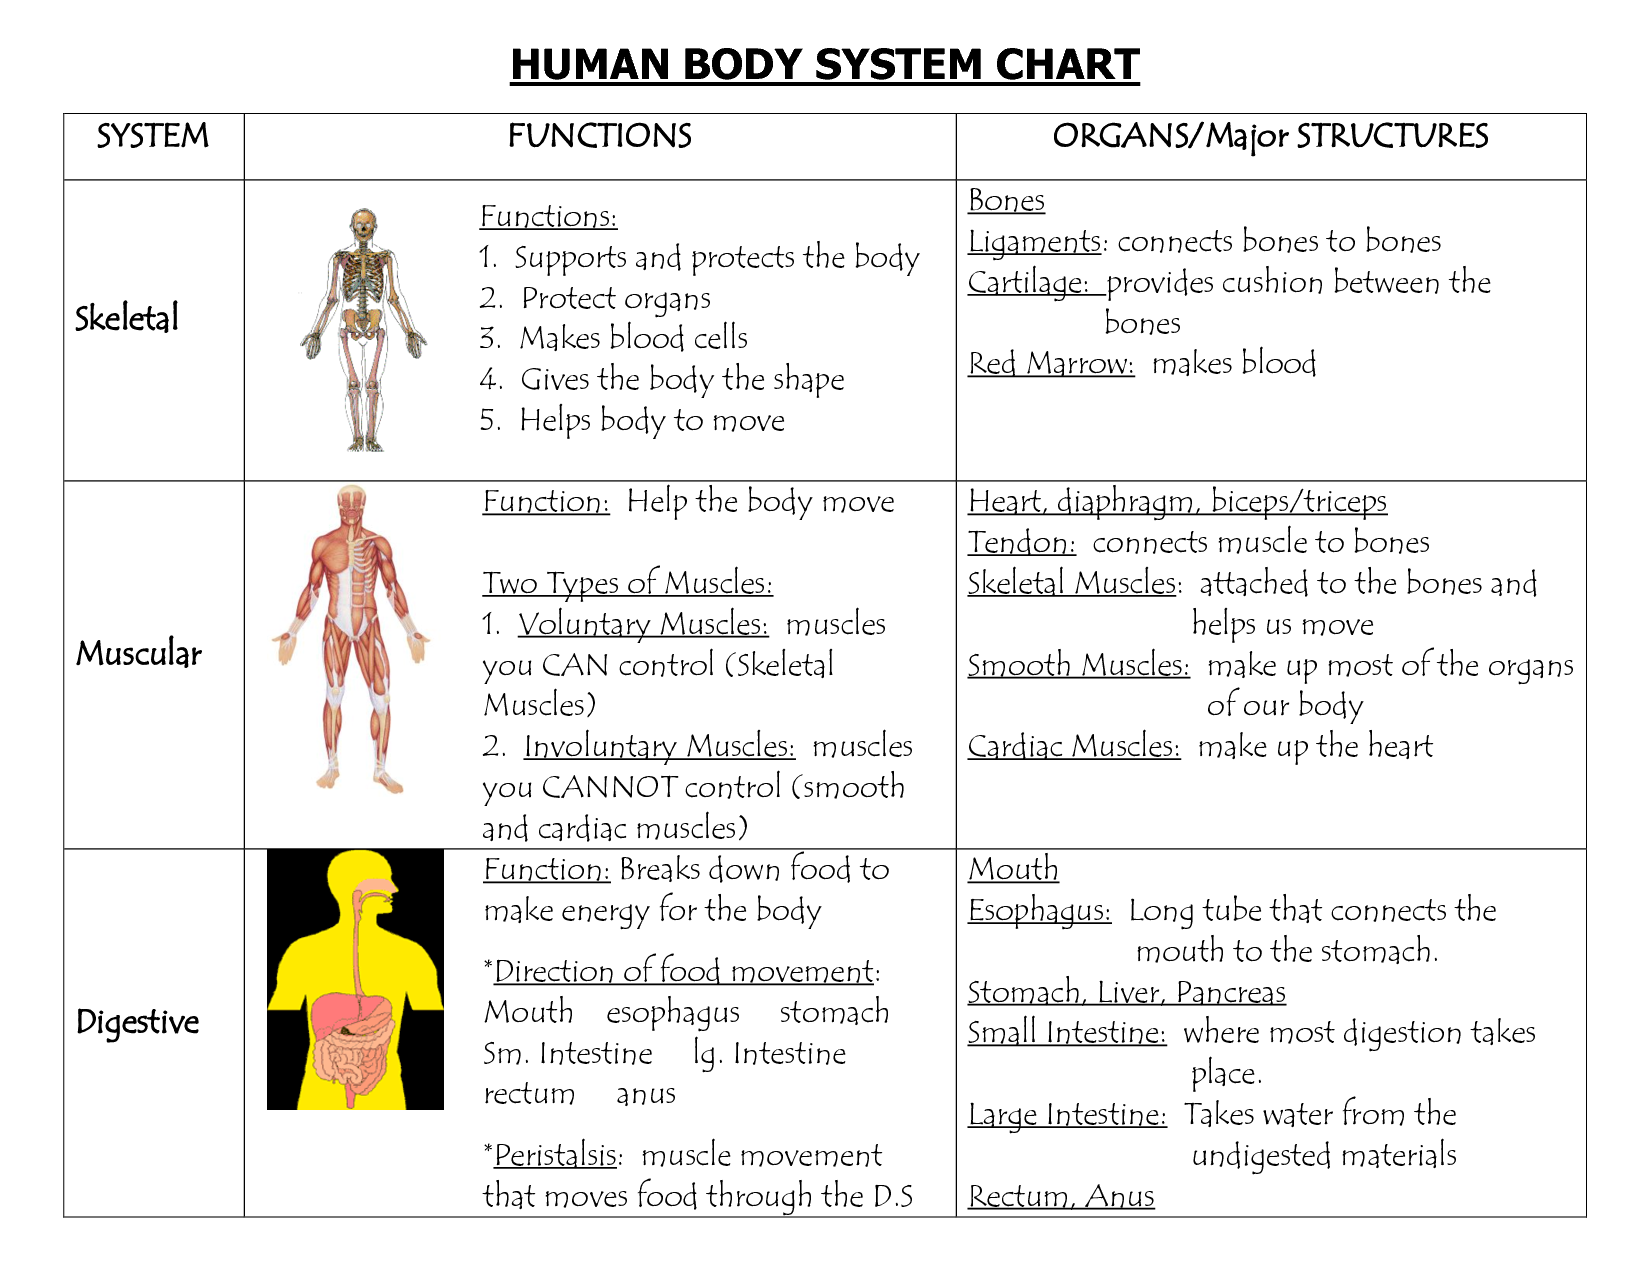 systems of the body | HUMAN BODY SYSTEM CHART | Pinterest | Body ...